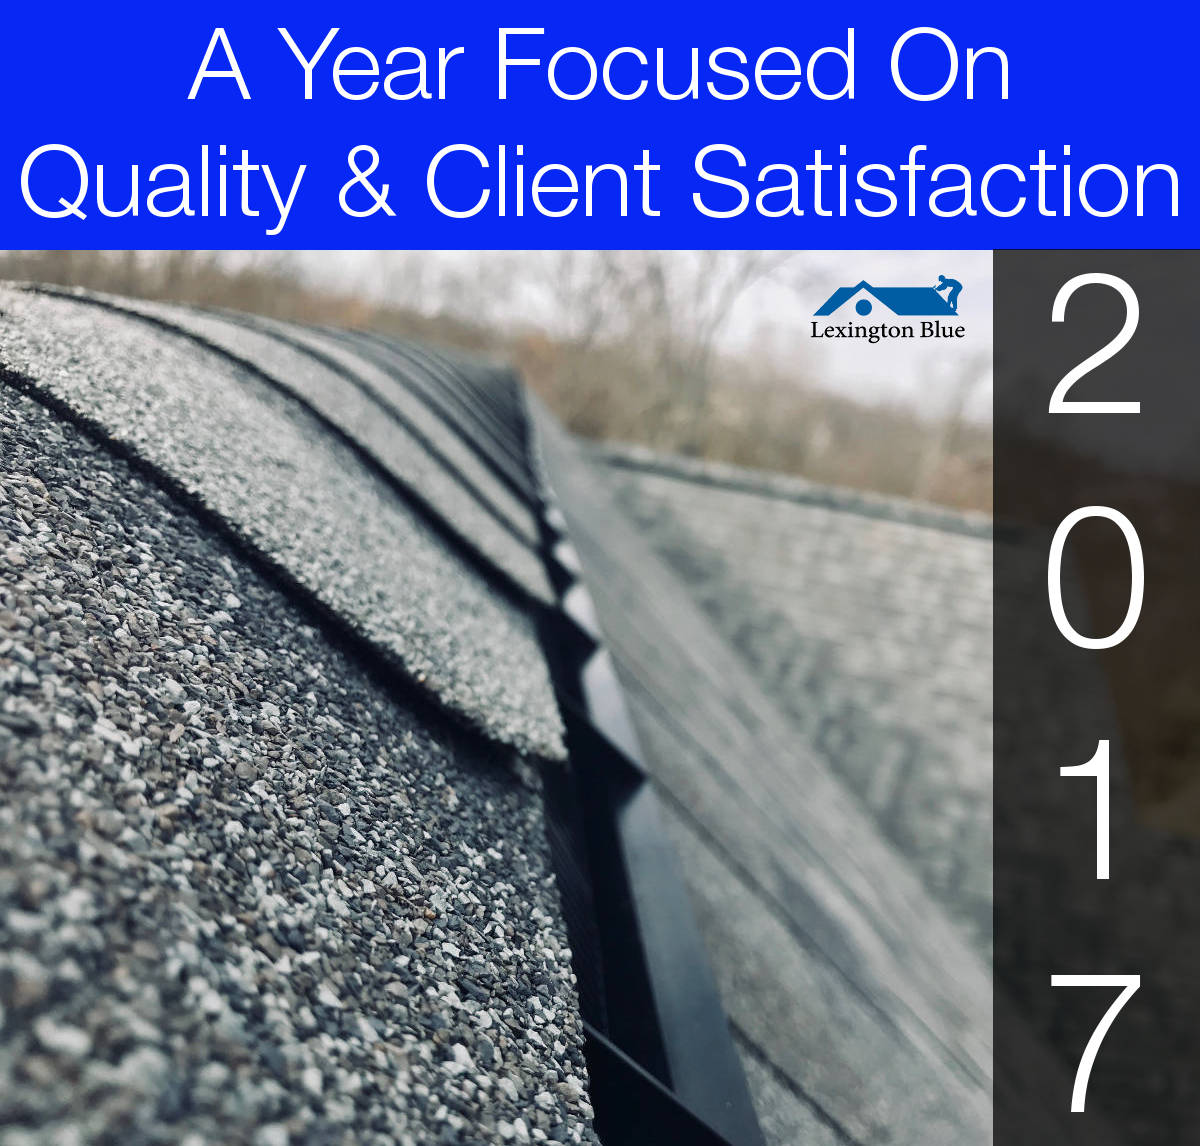 An Overview On A Few Of Our Completed Roofing Projects In Lexington, KY For 2017